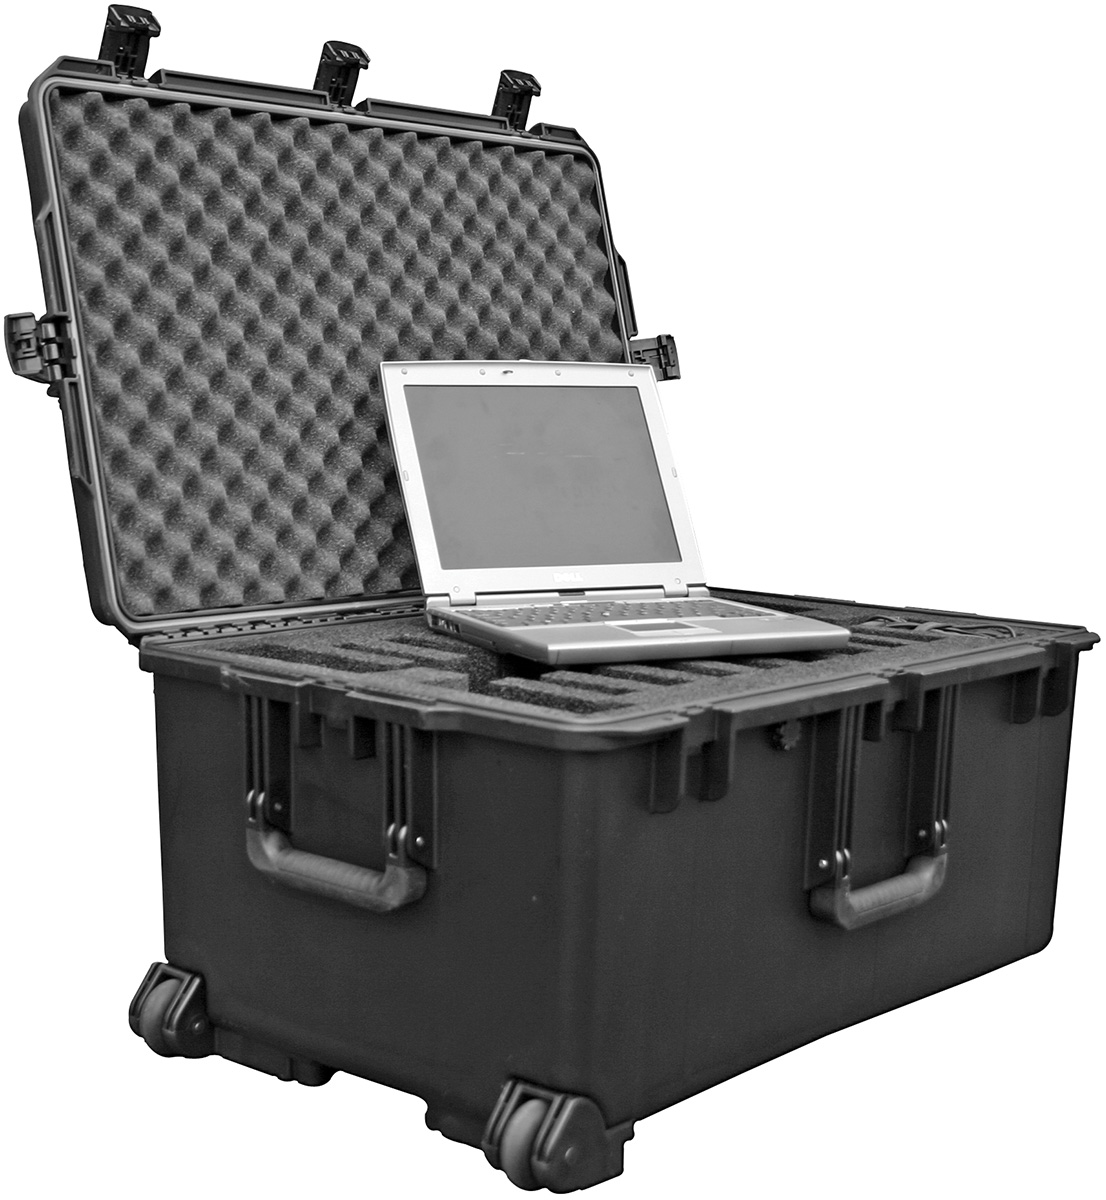 pelican peli products 472 6 LAPTOP IM military laptop transport box